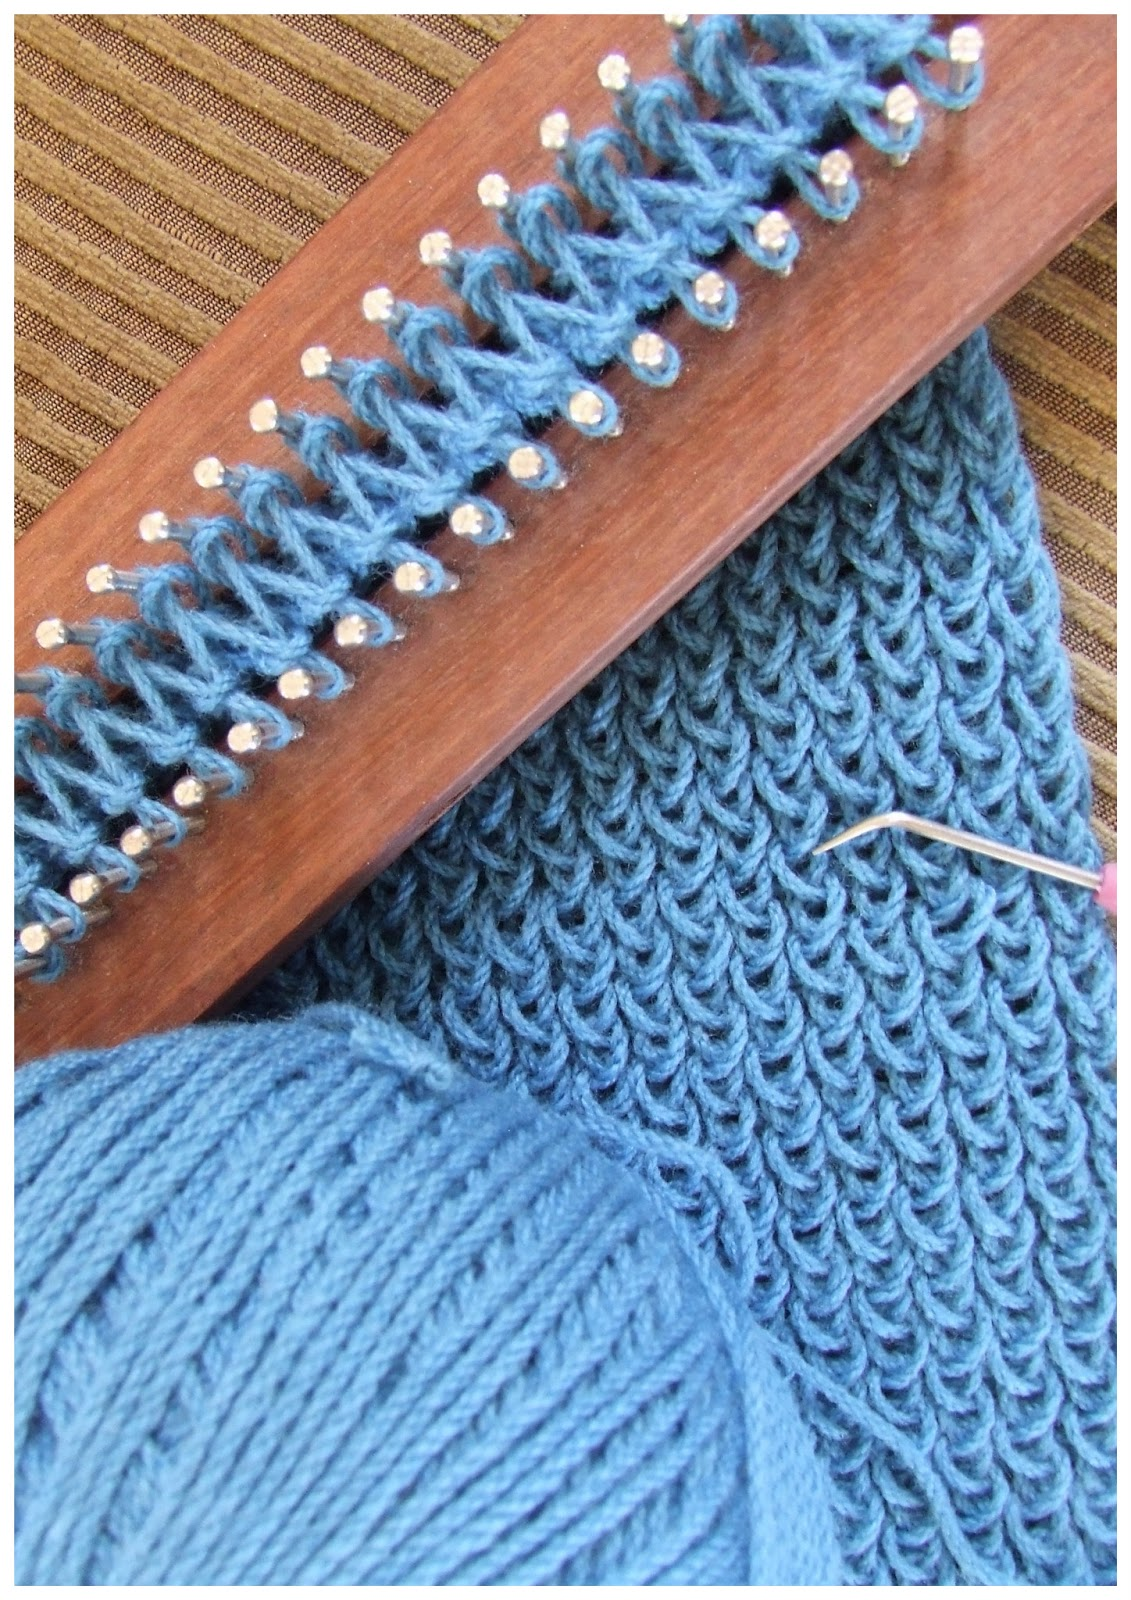 Knit Stitch On S Loom : FitzBirch Crafts: Loom Knitting